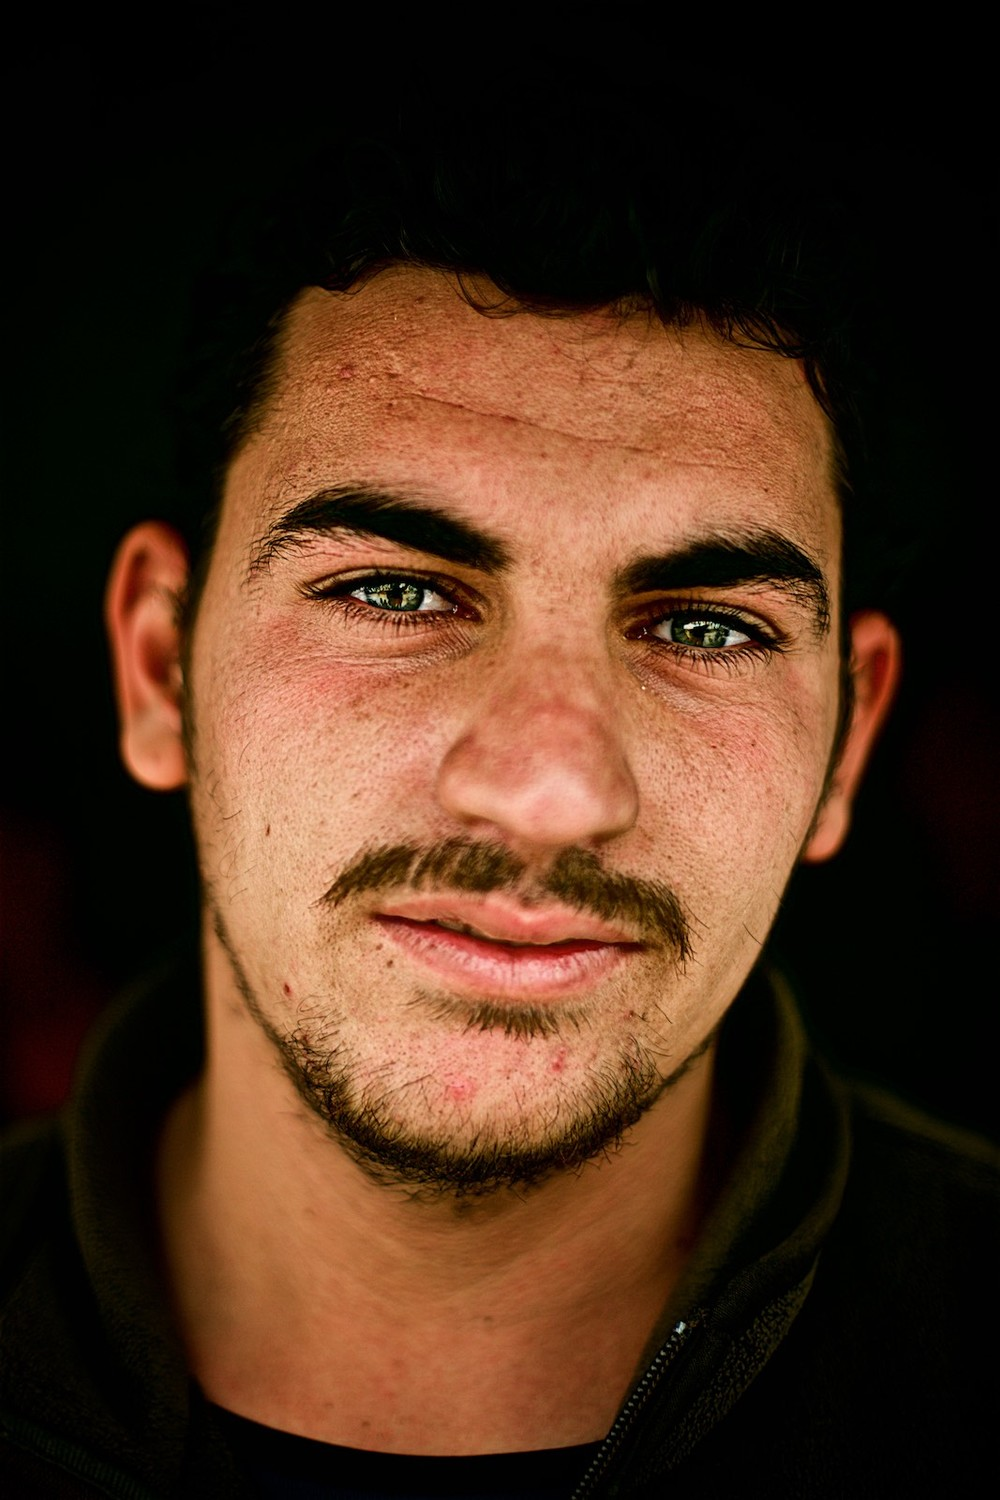 denis-bosnic-zaatari-jordan-refugee-camp-15.jpg